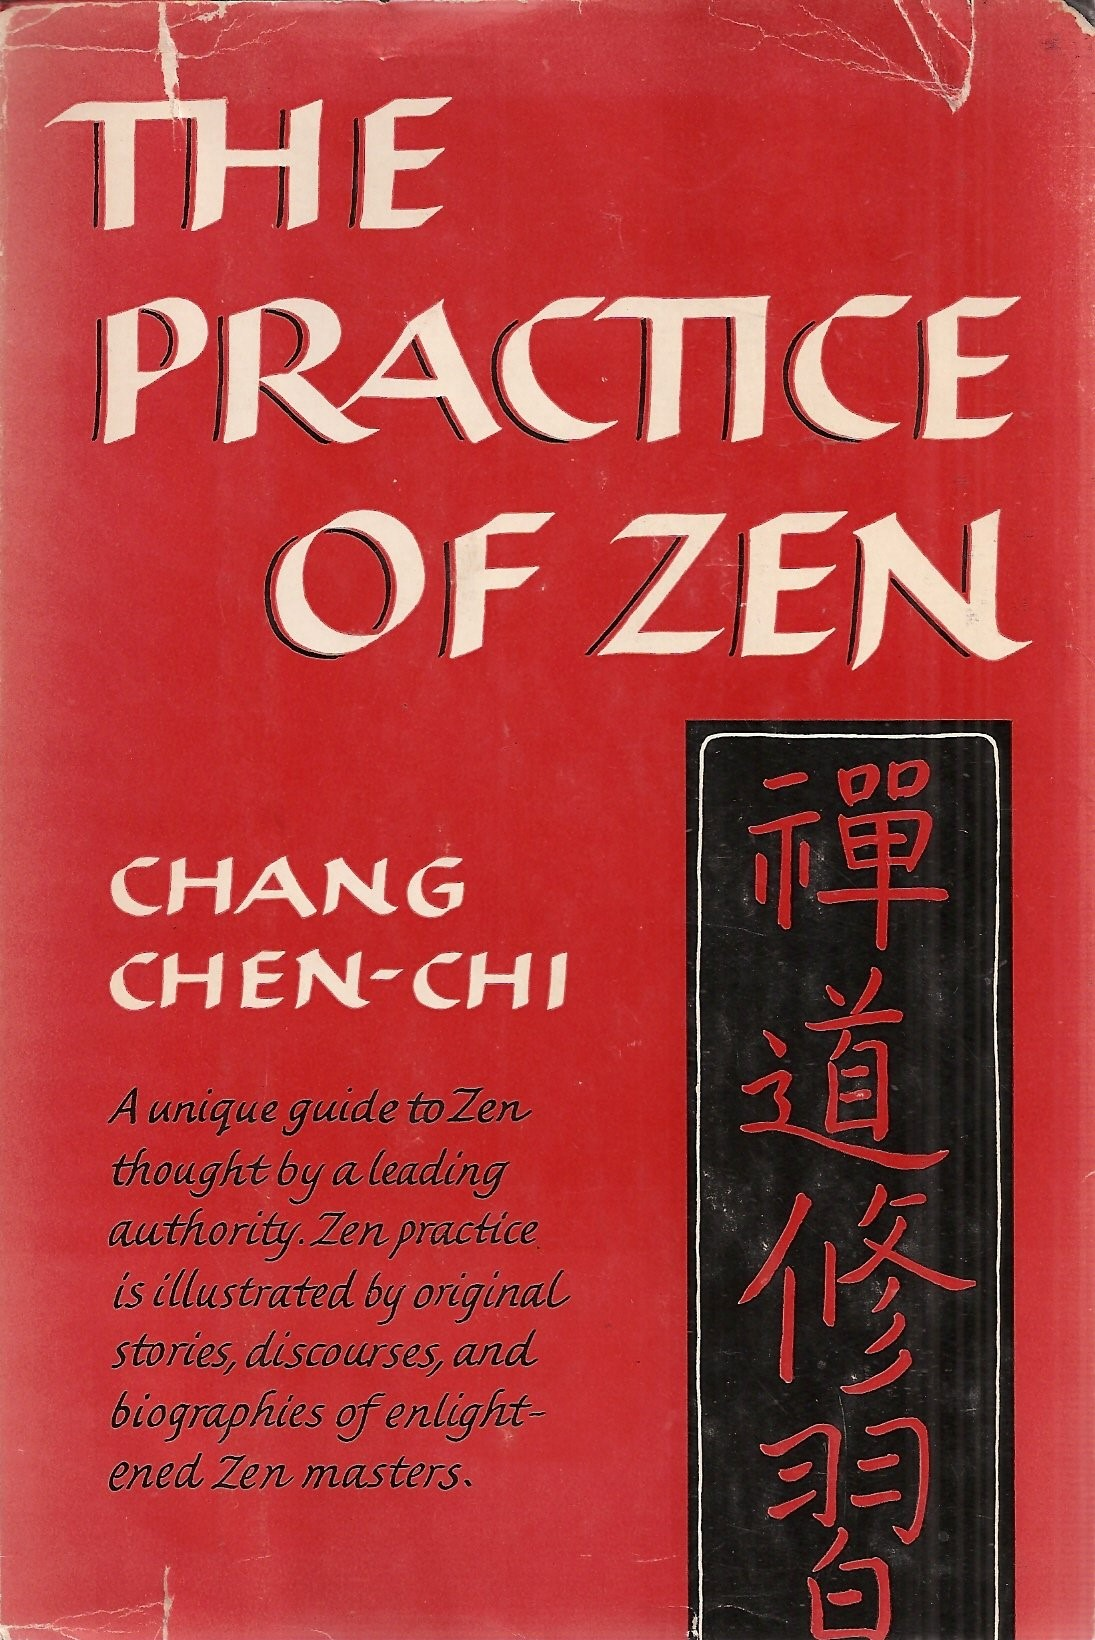 Cheng-Chi Practice cover art